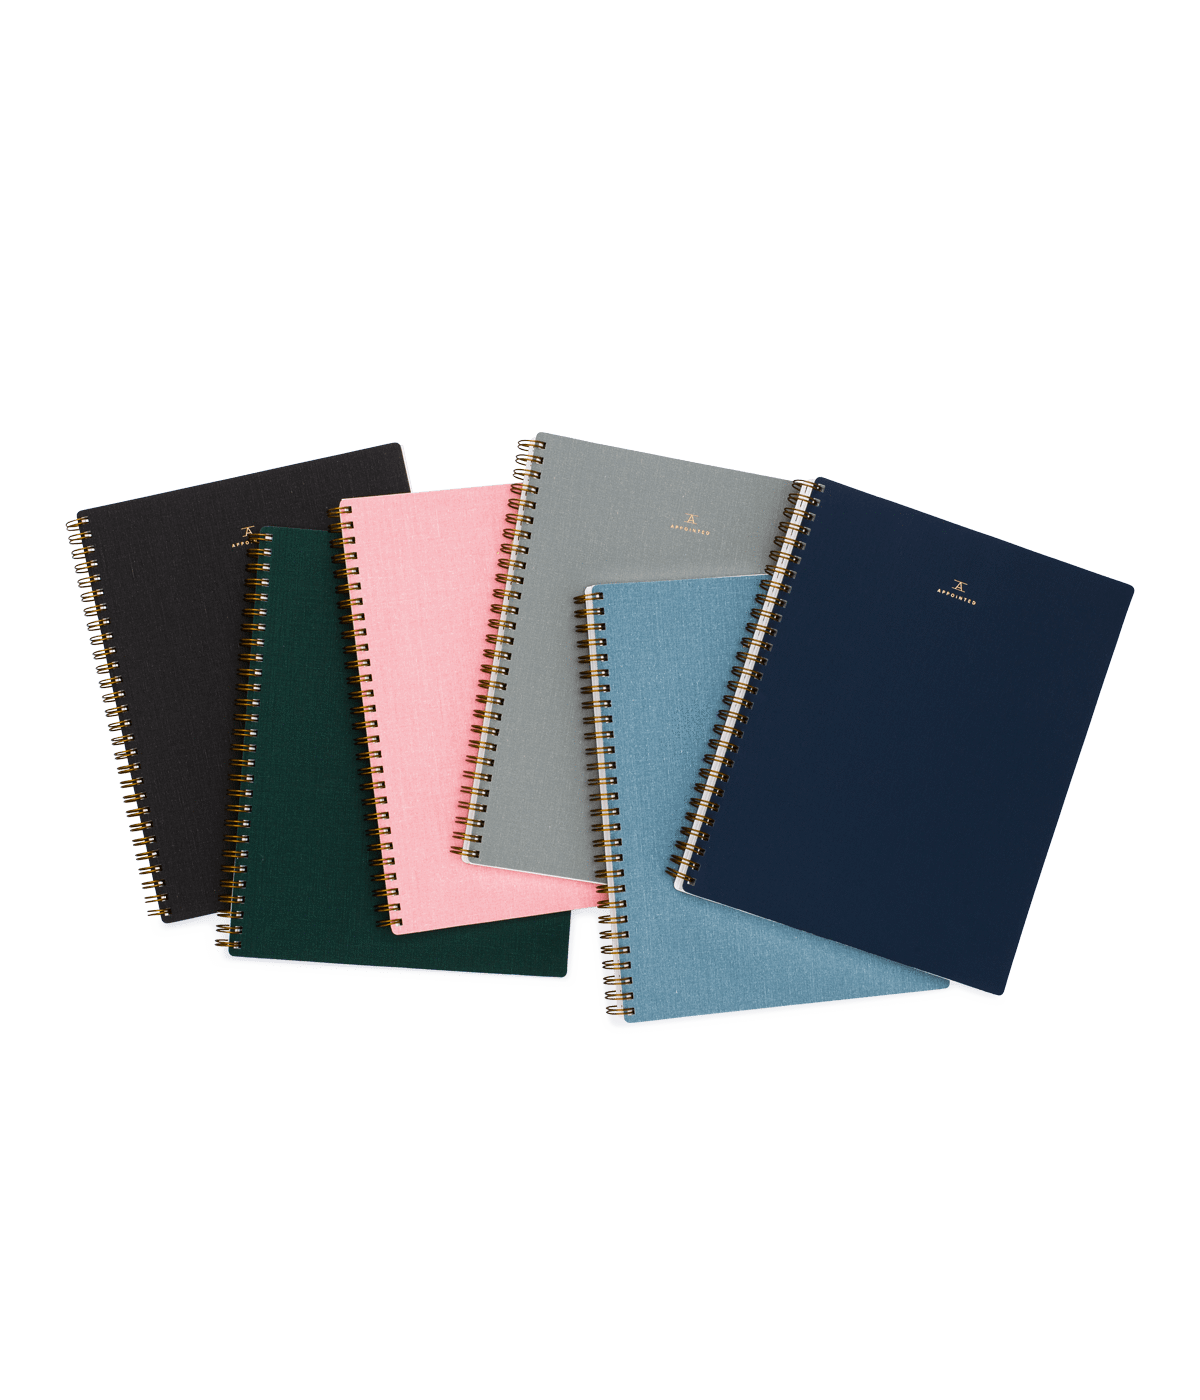 Notebook png. Download image arts